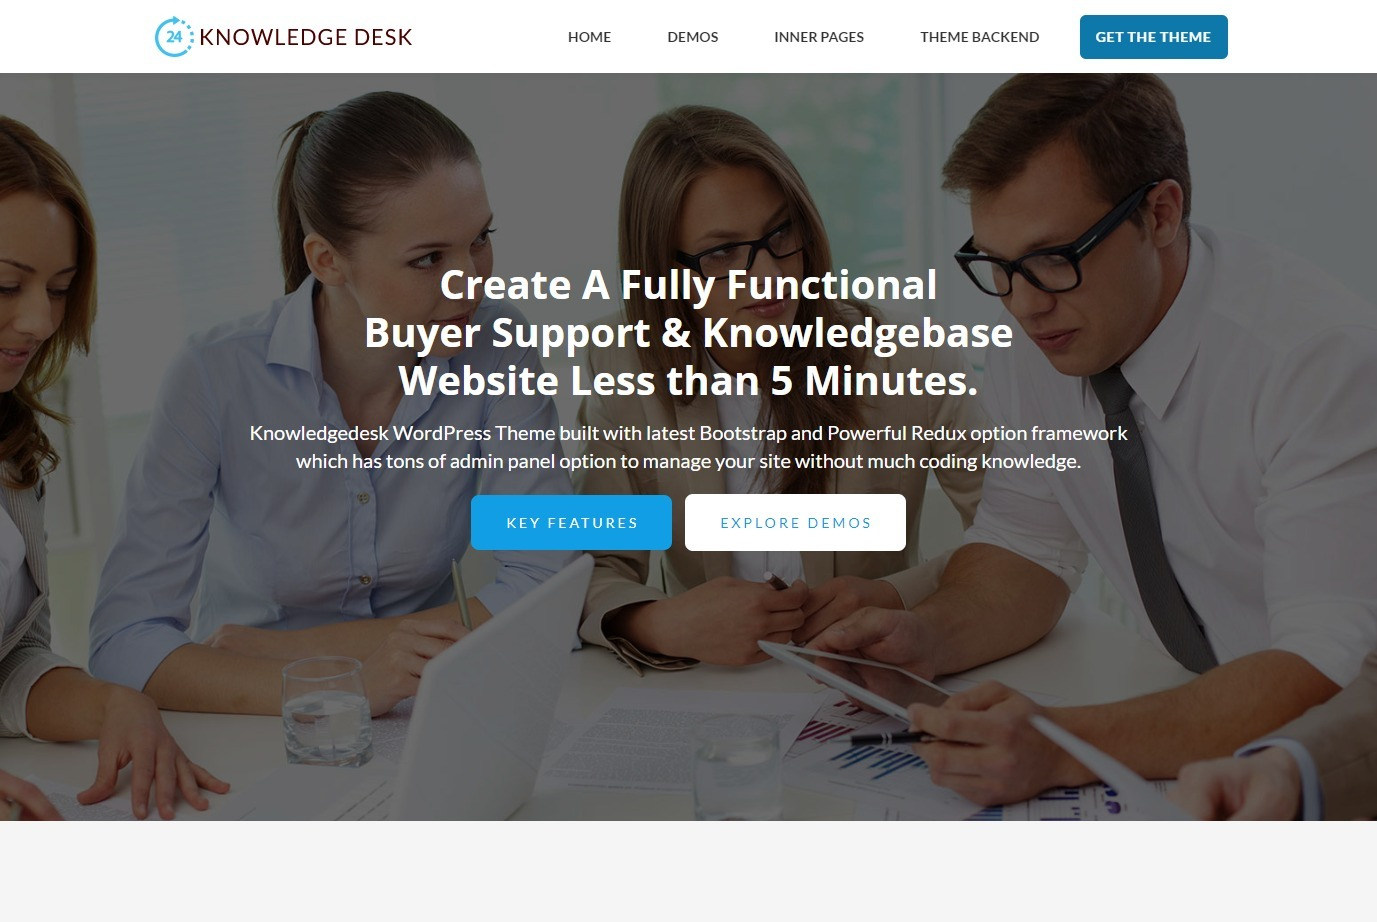 Knowledge Desk Full Service WordPress Theme for Tech and Purchaser Support